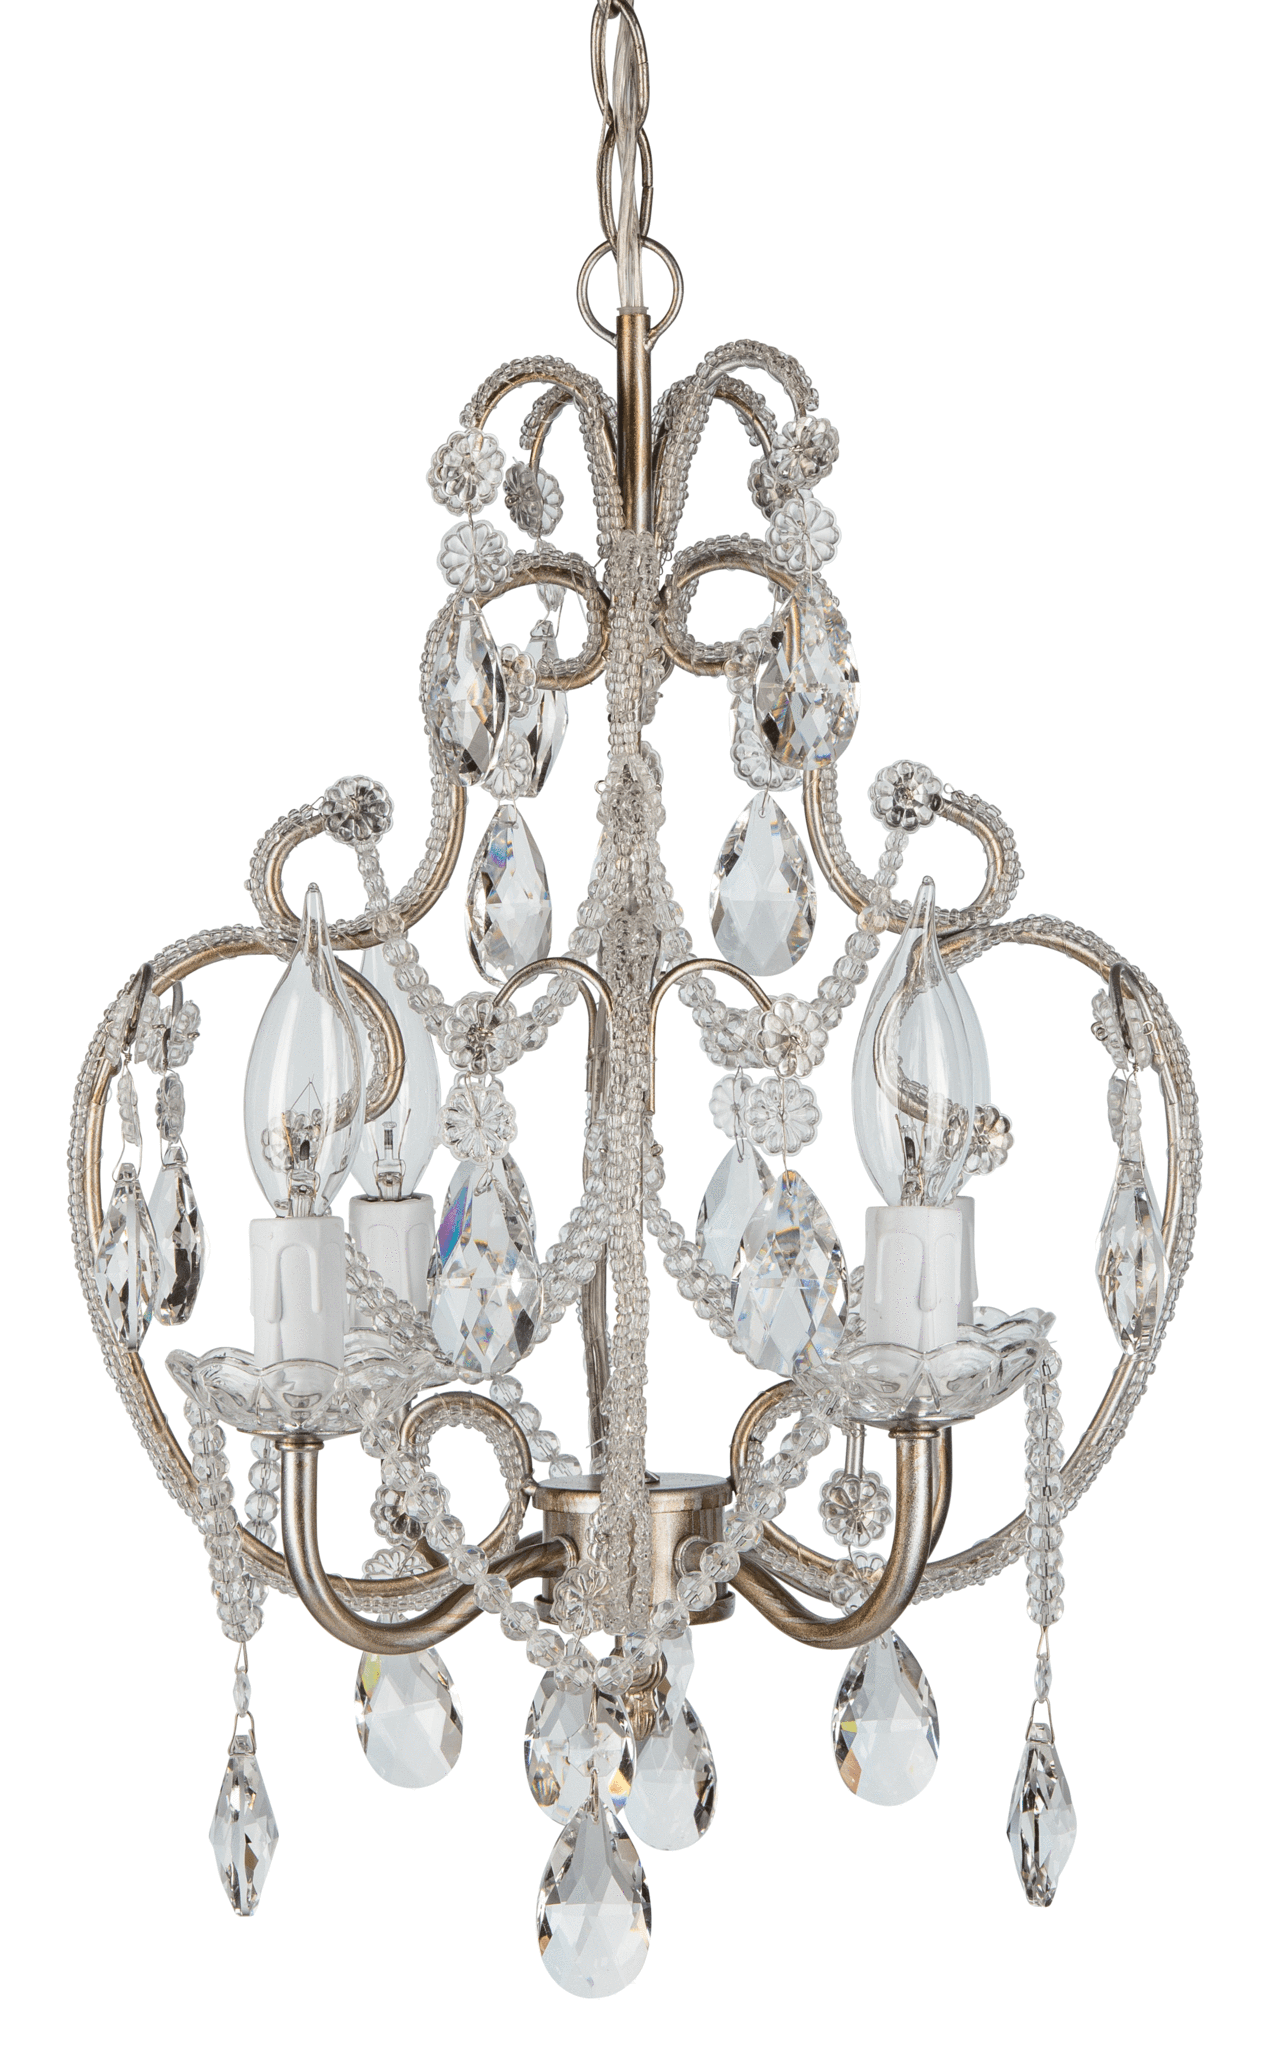 4 Light Beaded Crystal Plug In Chandelier Silver